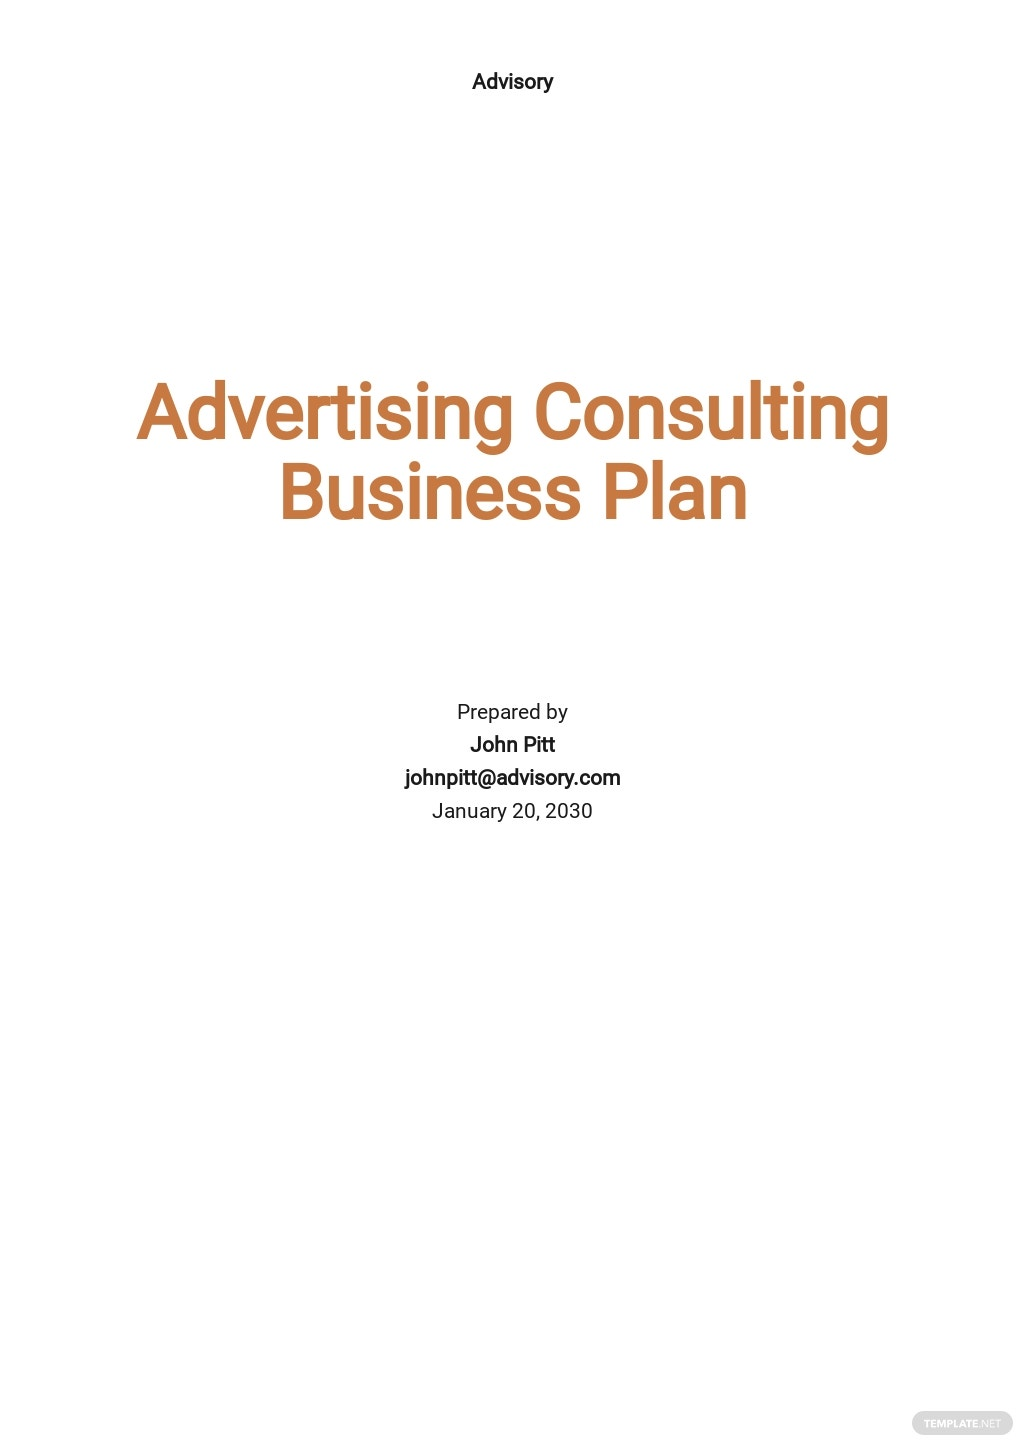 Advertising Consulting Business Plan Template